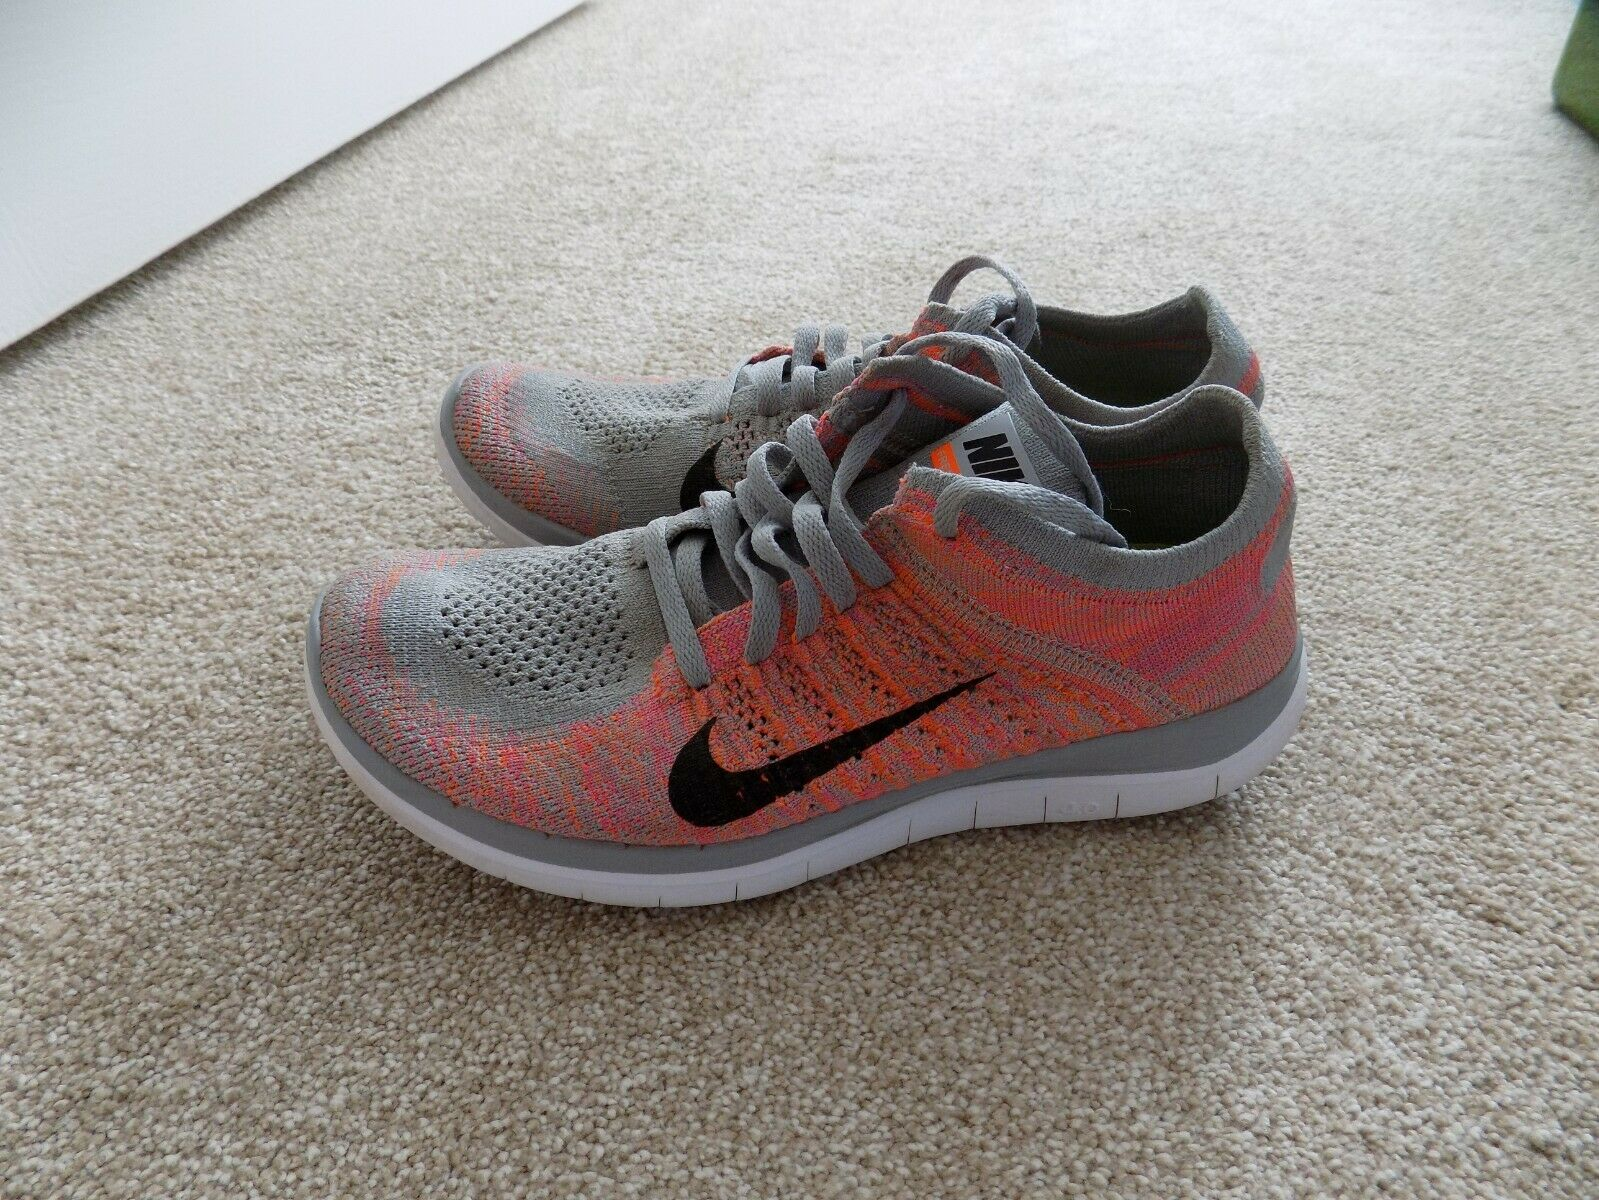 check out c3cd6 f7d1e WOMENS 7.5 NIKE FREE 4.0 FLYKNIT RUNNING SHOES WOLF GREY PINK BLACK WHITE  631050